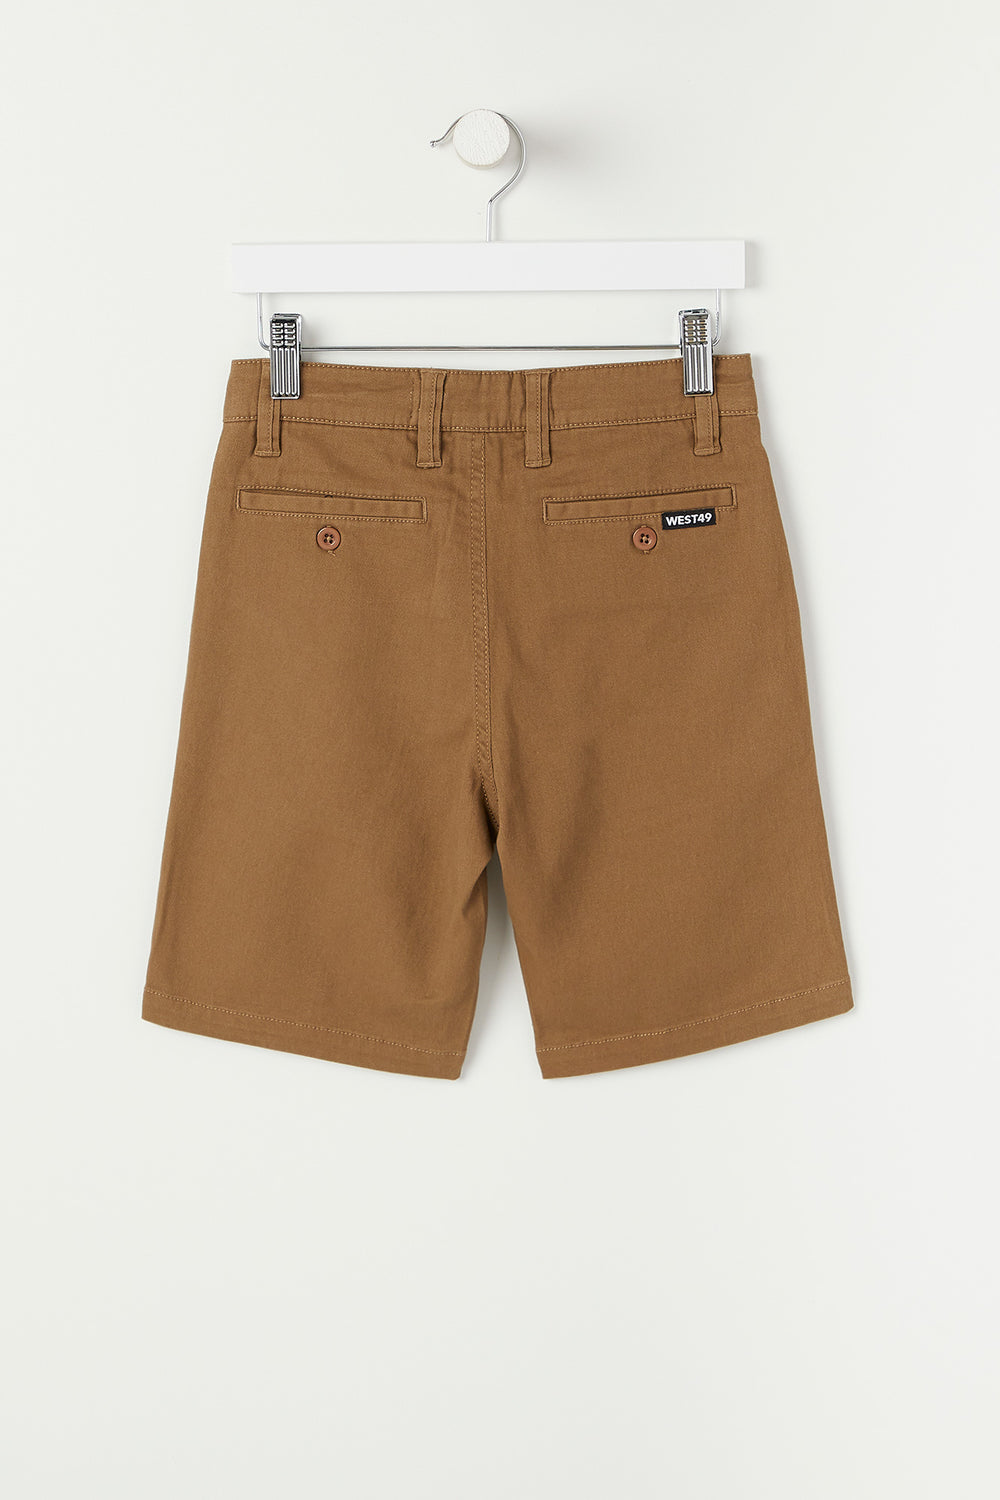 West49 Youth Twill Street Short Camel